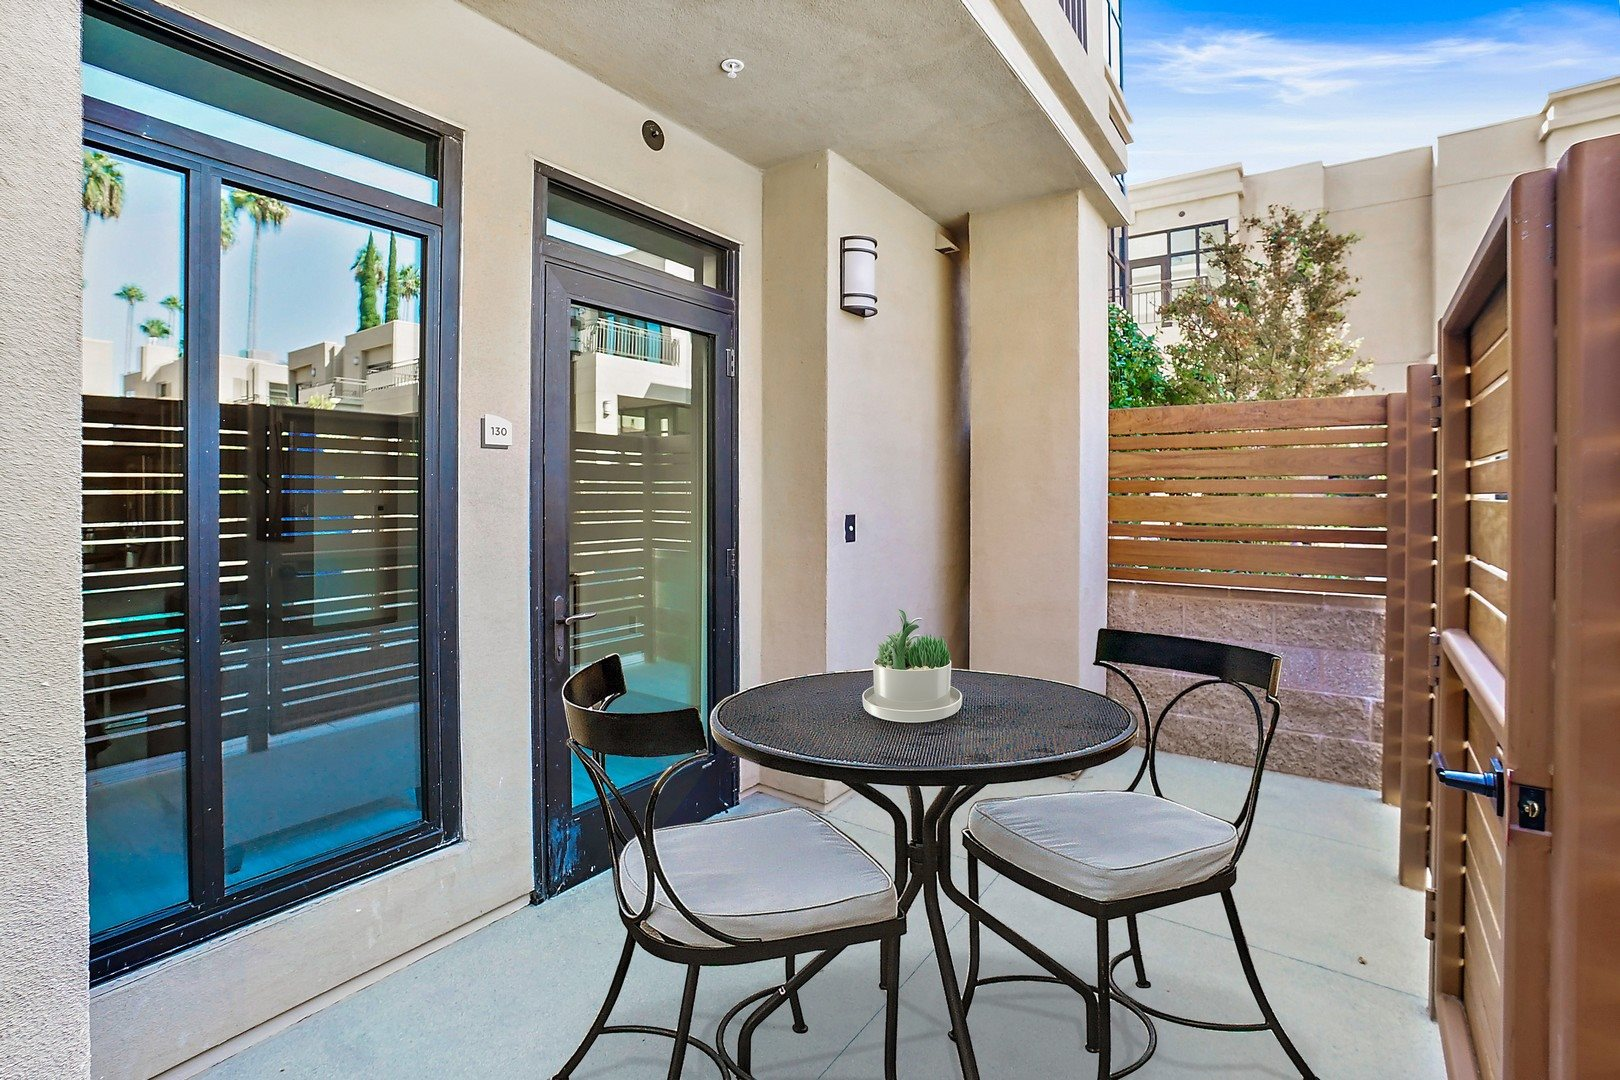 Tarzana CA Apartments - The Residences at Village Walk Patio